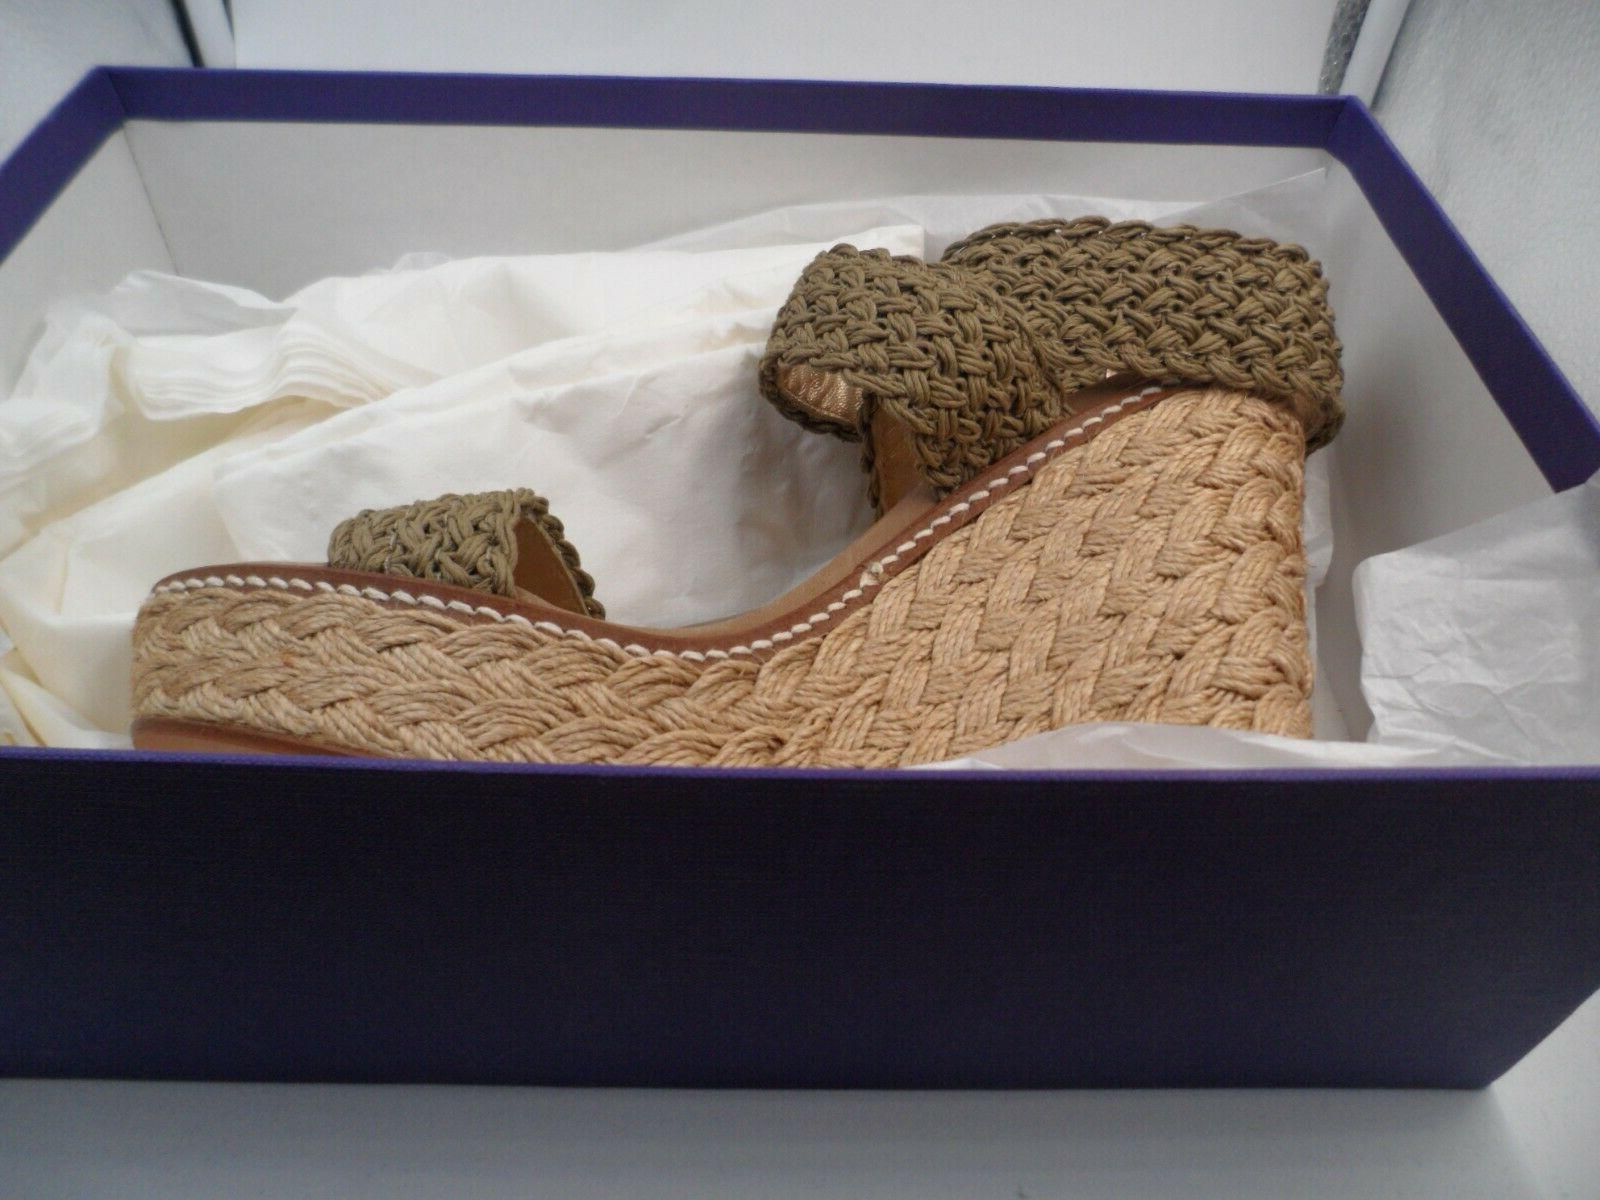 Stuart NIB Alex Crochet Wedge Sandal Ankle Wrap Swamp 6.5